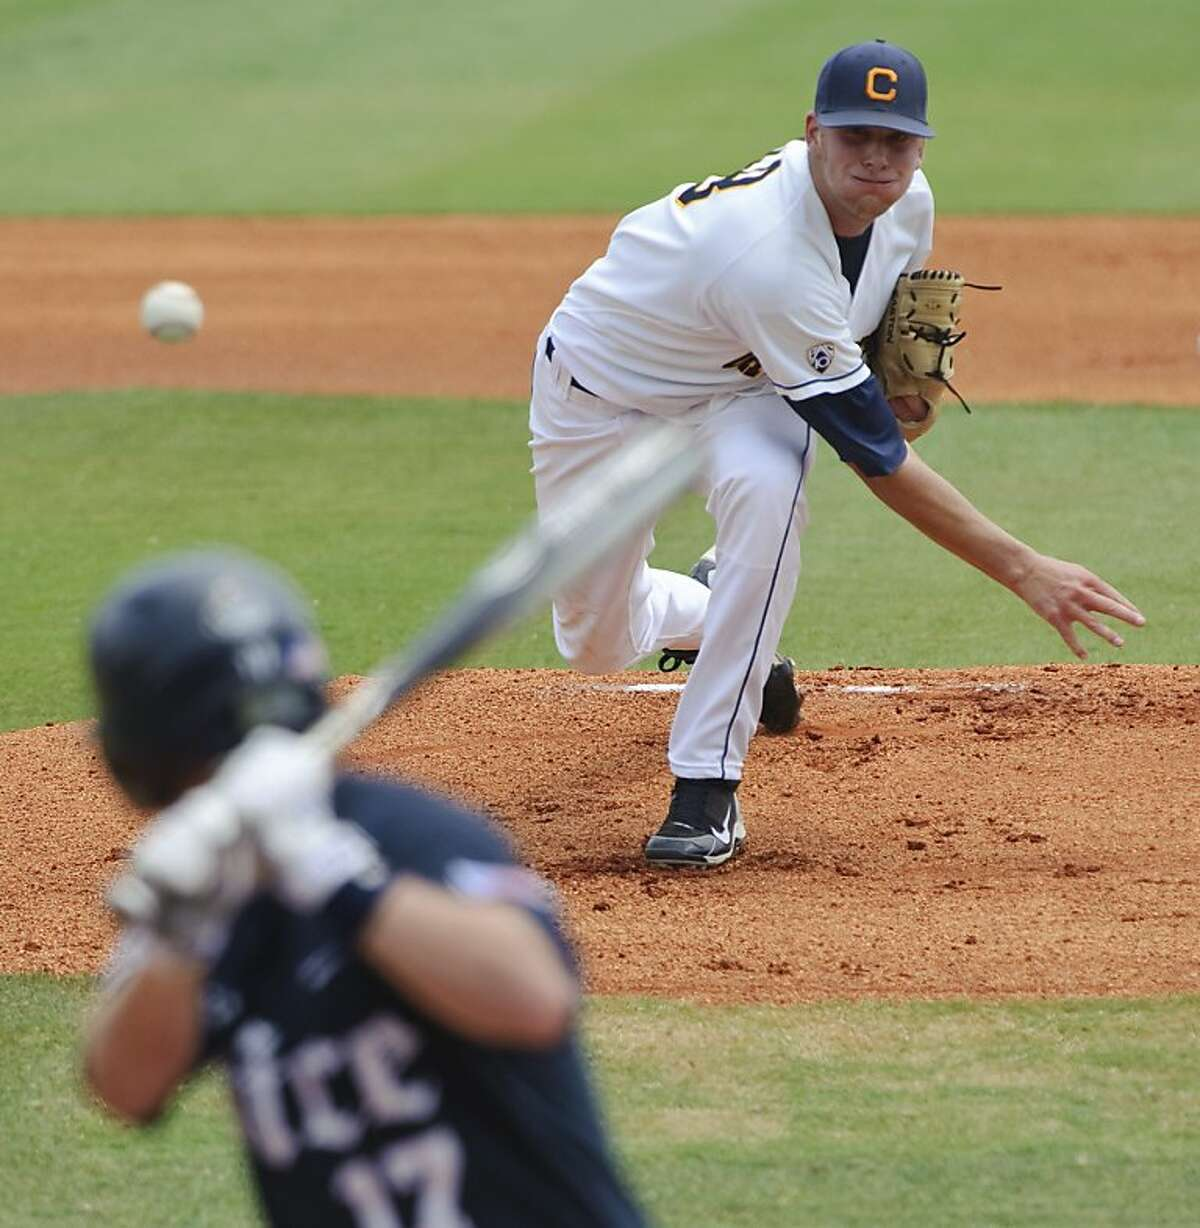 California's Dixon Anderson, back right, delivers a pitch to Rice's Keenan Cook, front left, in the first inning of an NCAA regional college baseball game, Sunday, June 5, 2011, in Houston.